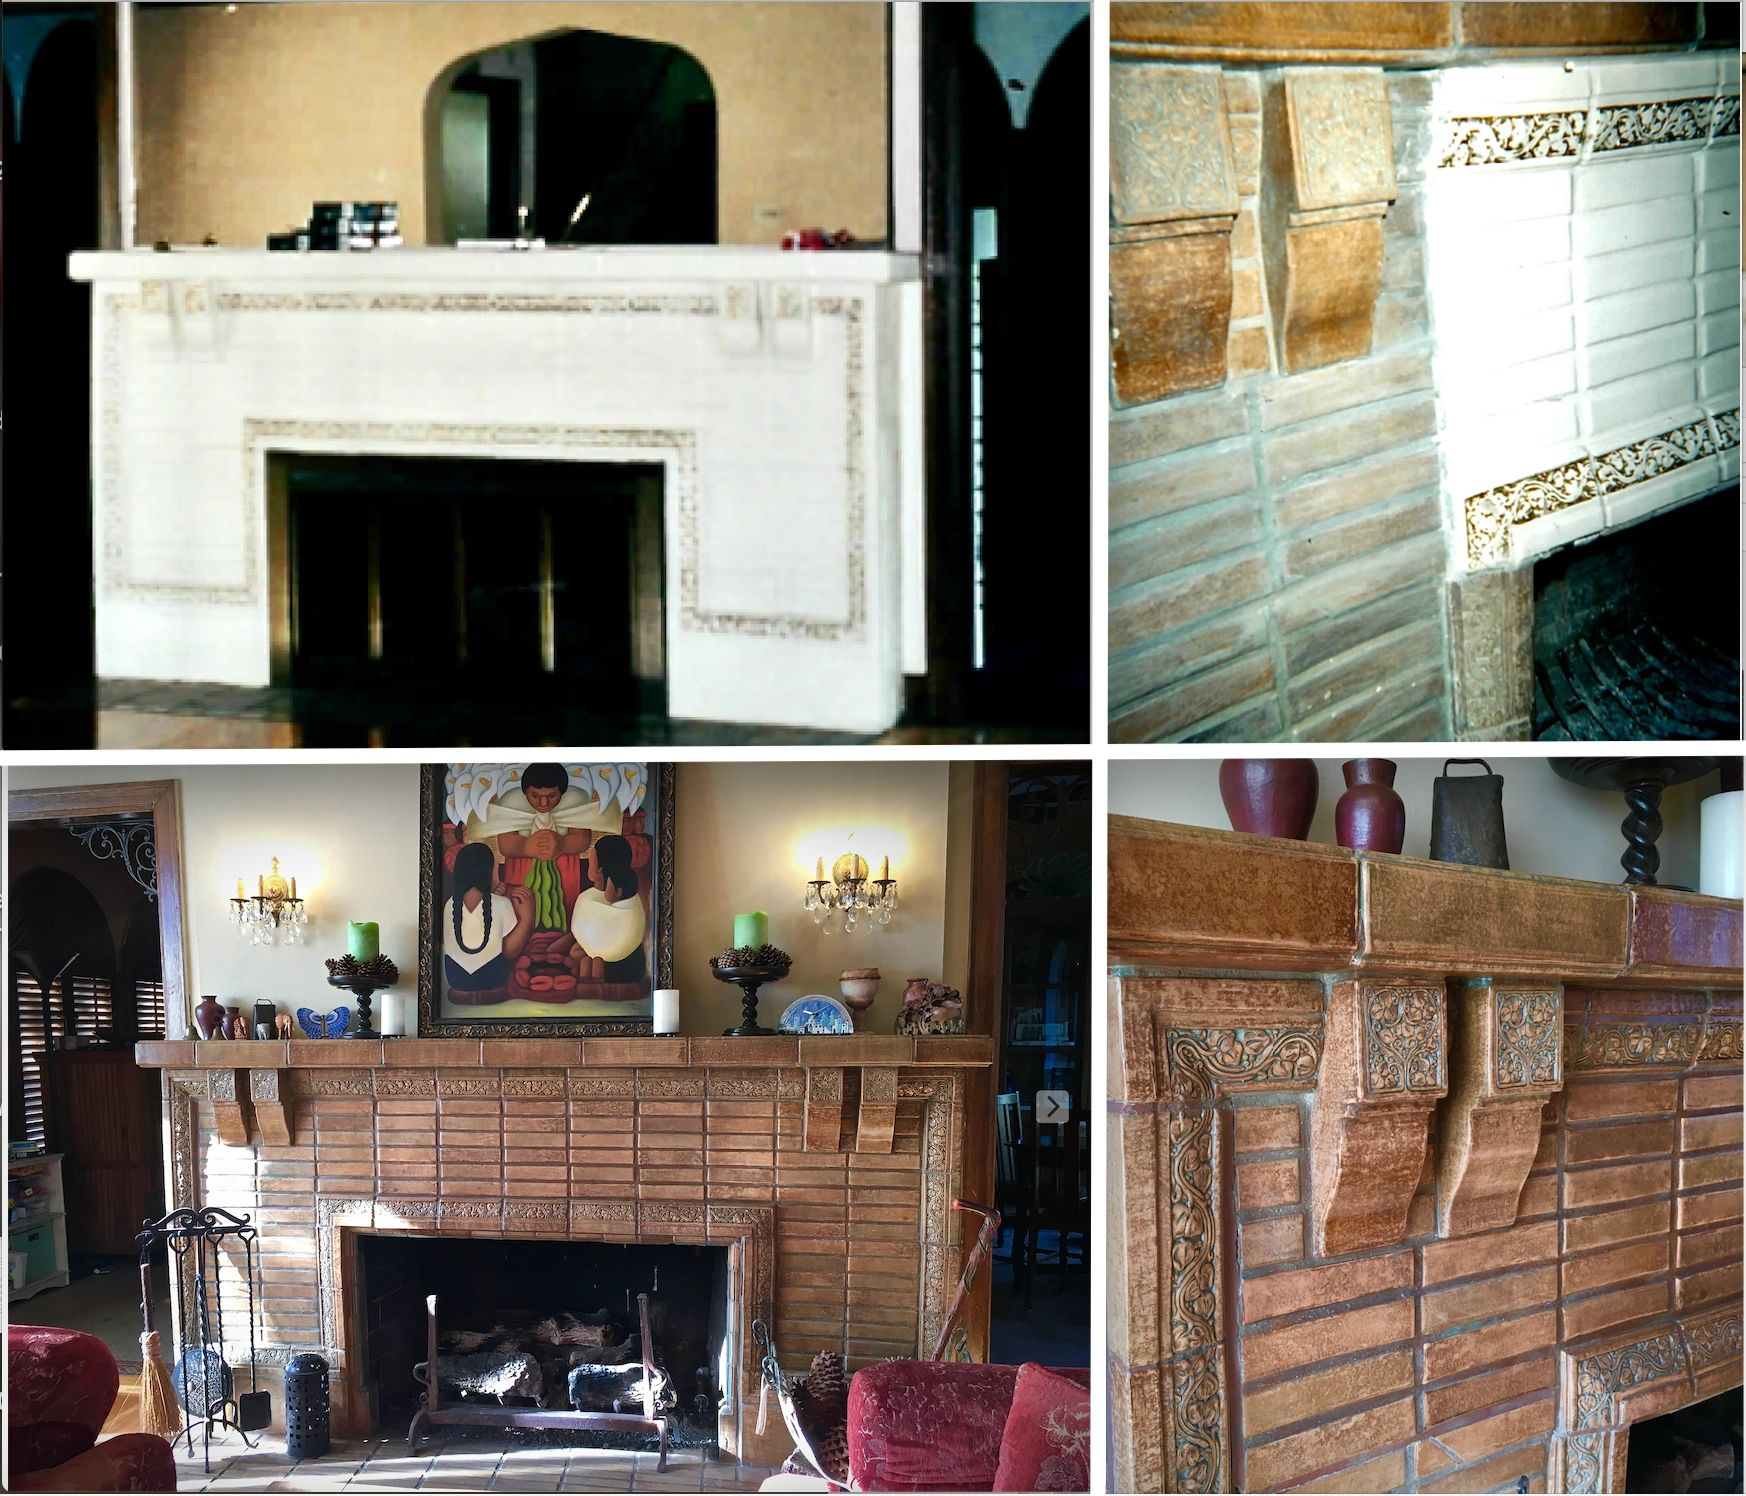 "{""blocks"":[{""key"":""b549l"",""text"":""Batchelder fireplace restoration. Stripping off 1960's paint to reveal original and rare 1920's tile.  "",""type"":""unstyled"",""depth"":0,""inlineStyleRanges"":[],""entityRanges"":[],""data"":{}},{""key"":""b2fii"",""text"":""Re-pointing  of flew and restoration of original gas lines "",""type"":""unstyled"",""depth"":0,""inlineStyleRanges"":[],""entityRanges"":[],""data"":{}}],""entityMap"":{}}"